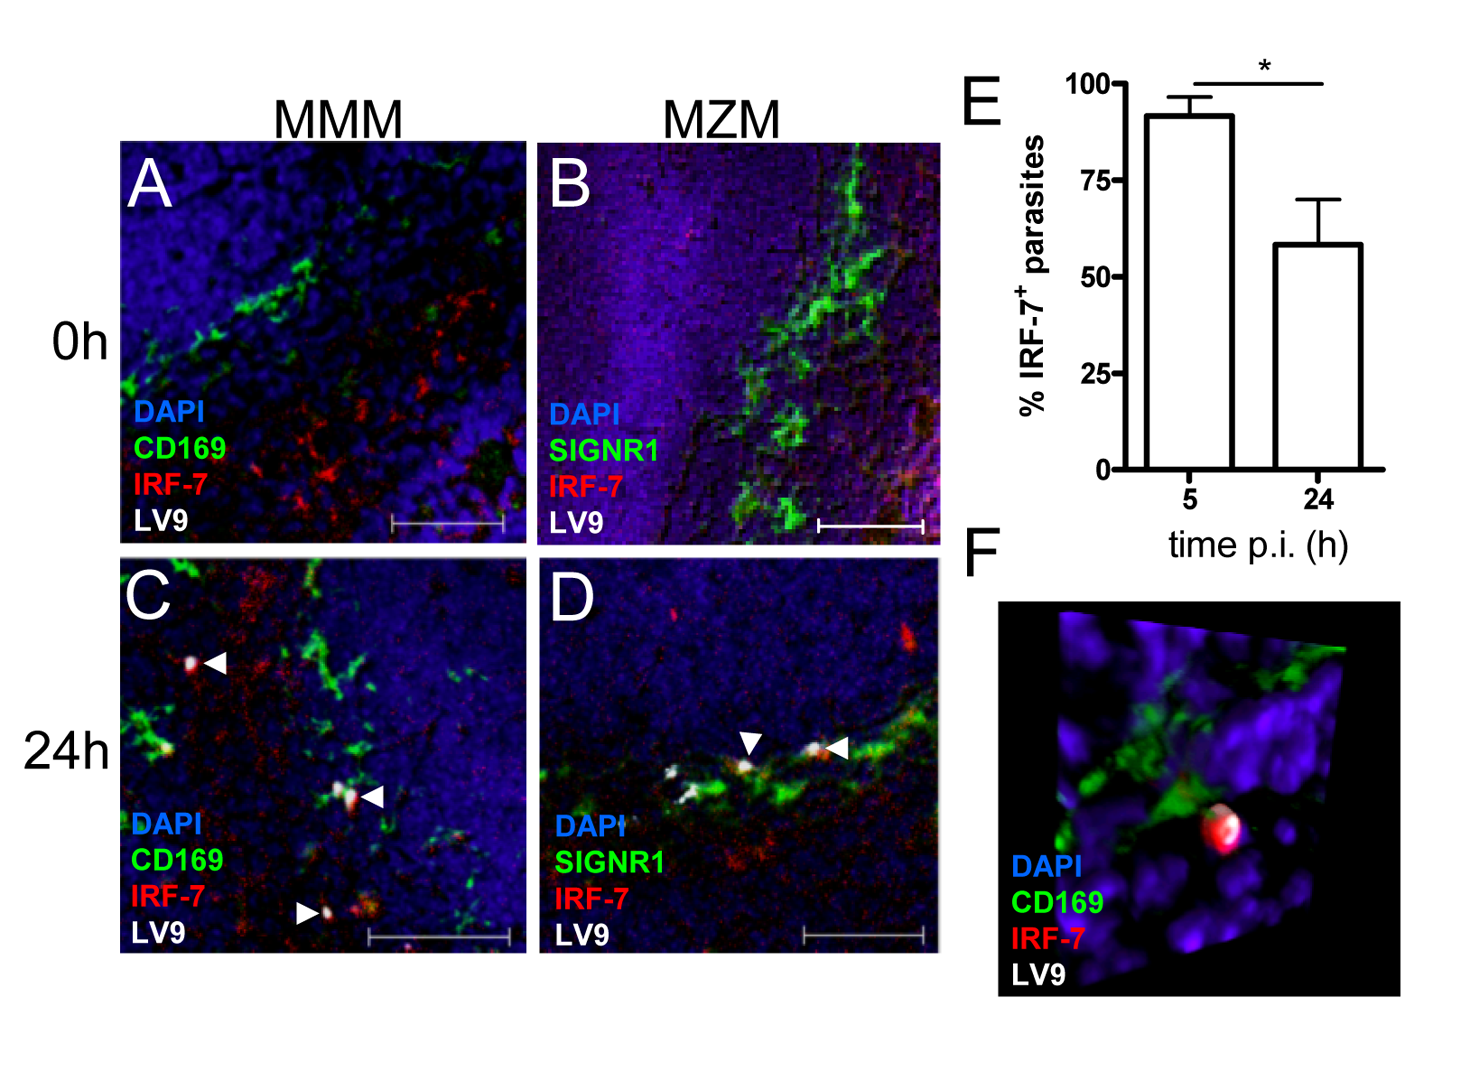 IRF-7 is induced in MZM and MM in situ.